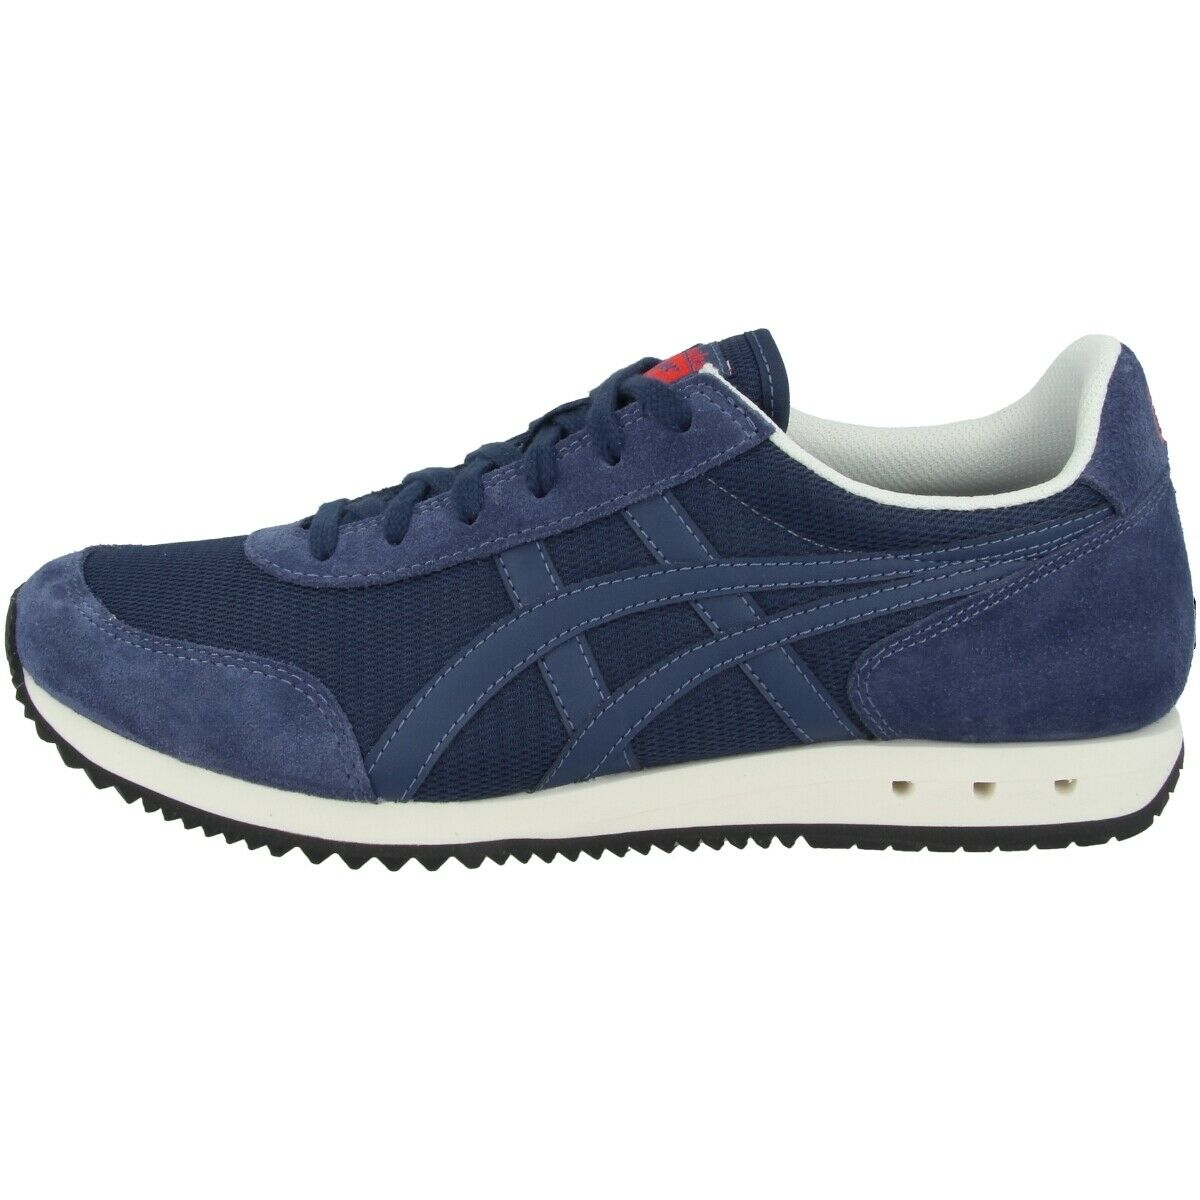 Asics Onitsuka Tiger New York shoes Retro Casual Trainers bluee 1183A394-400